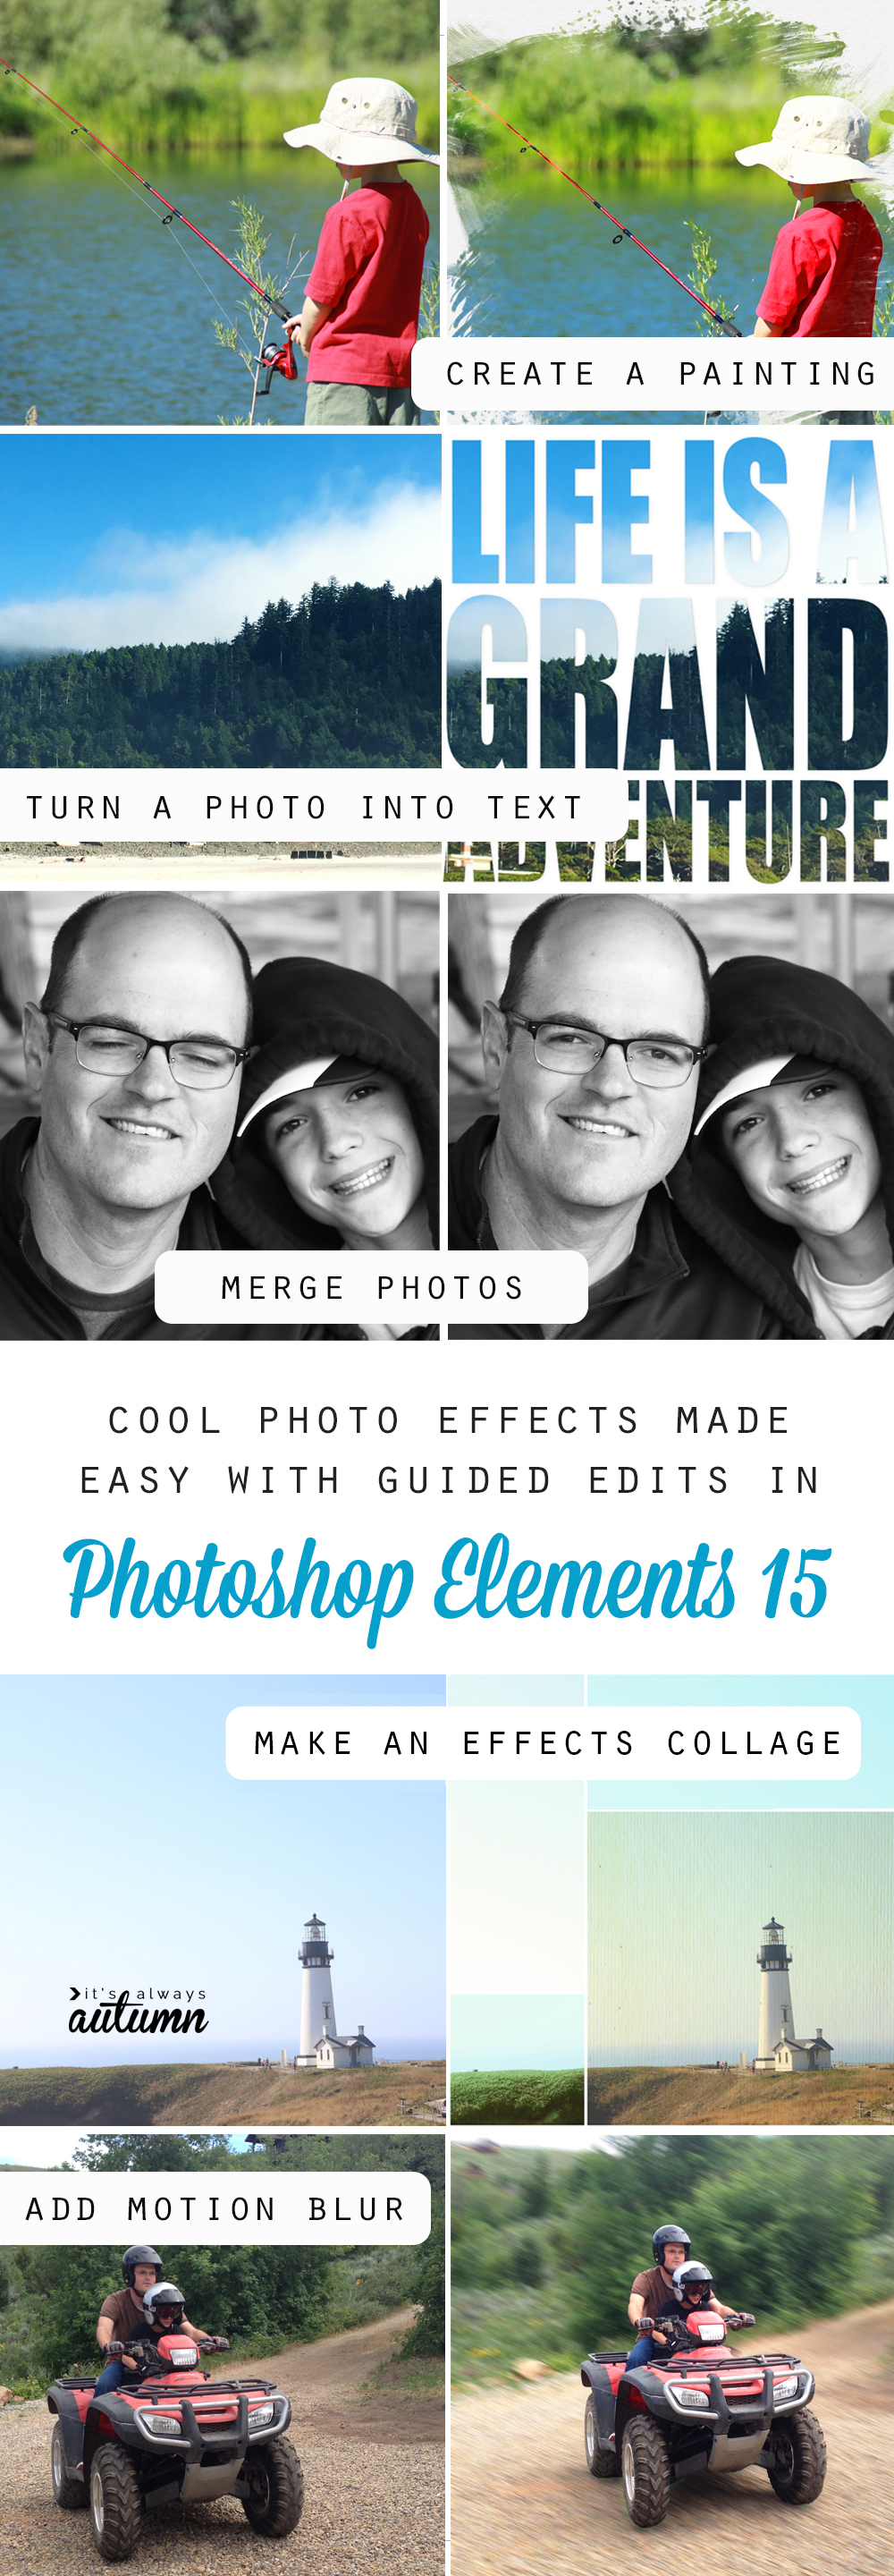 There are so many cool photo edits and effects you can do in Photoshop Elements 15 using easy guided edits!